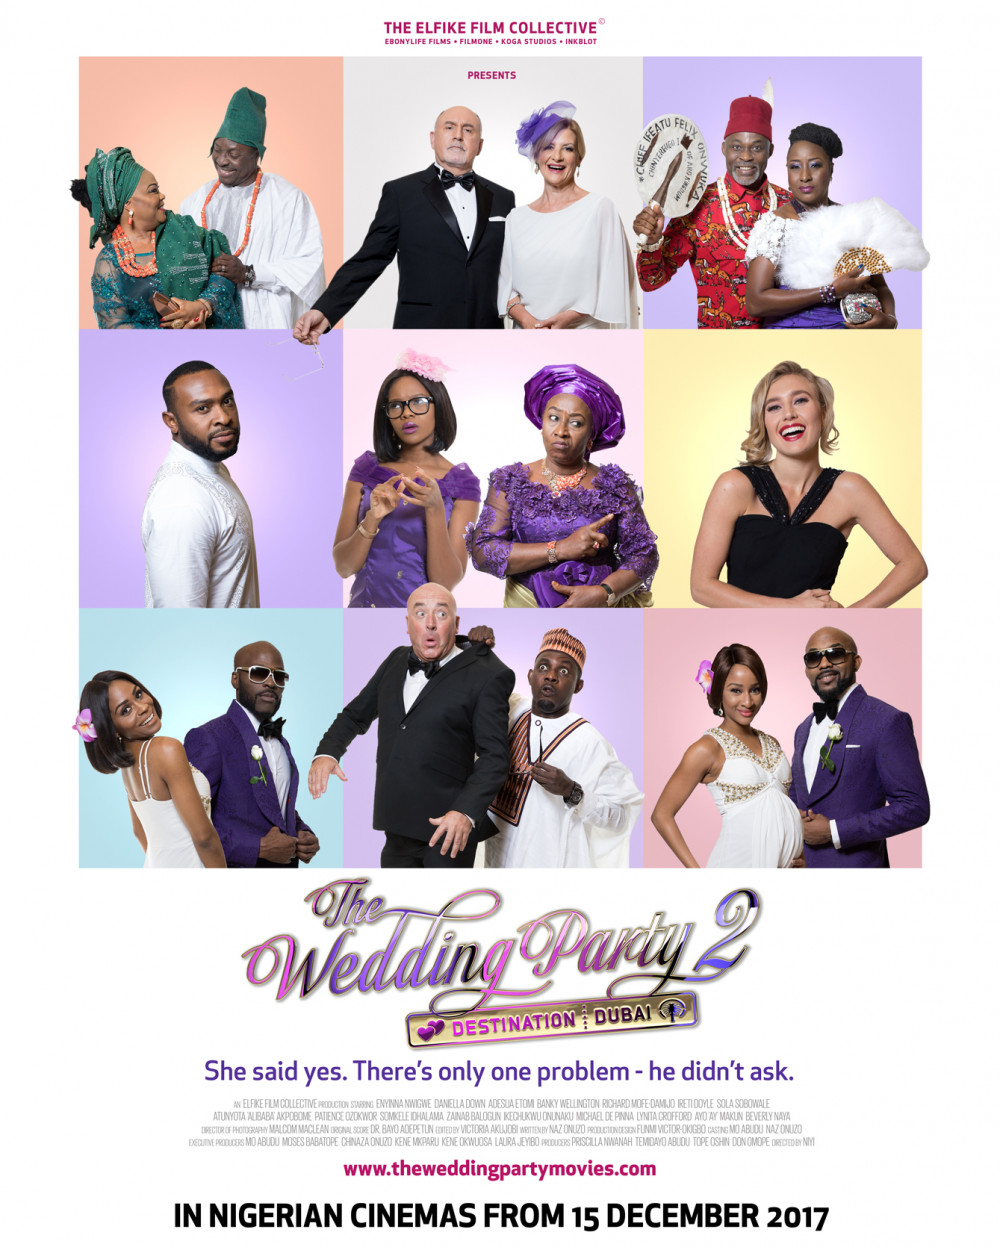 The Wedding Party 2: Destination Dubai Returns With All Your Favourite Characters|Watch Teaser